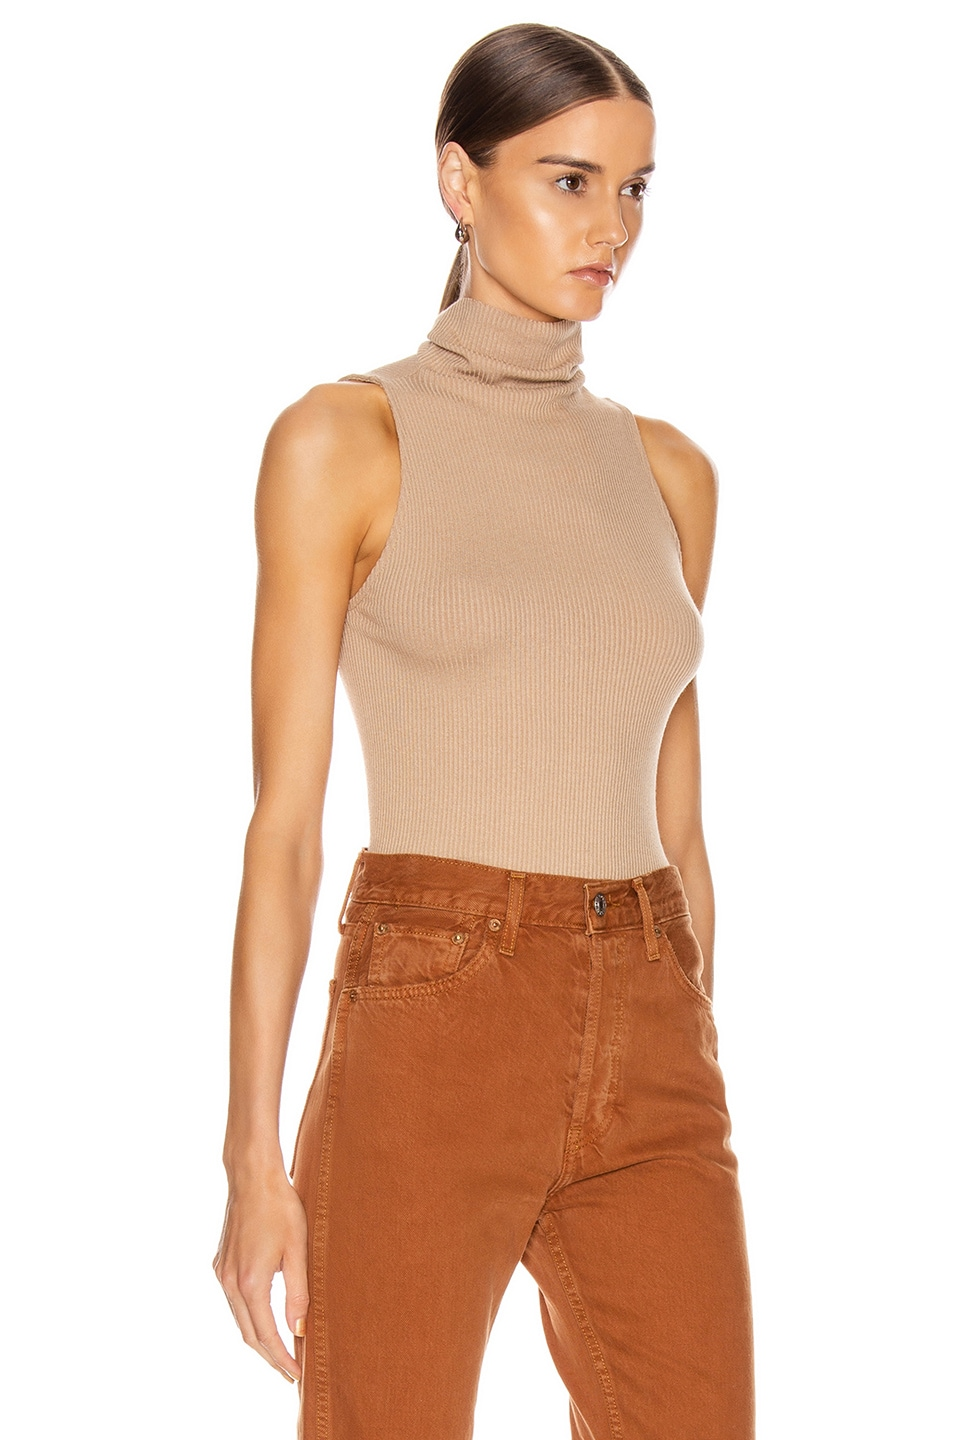 Image 2 of Enza Costa for FWRD Rib Sleeveless Turtleneck in Sandstone